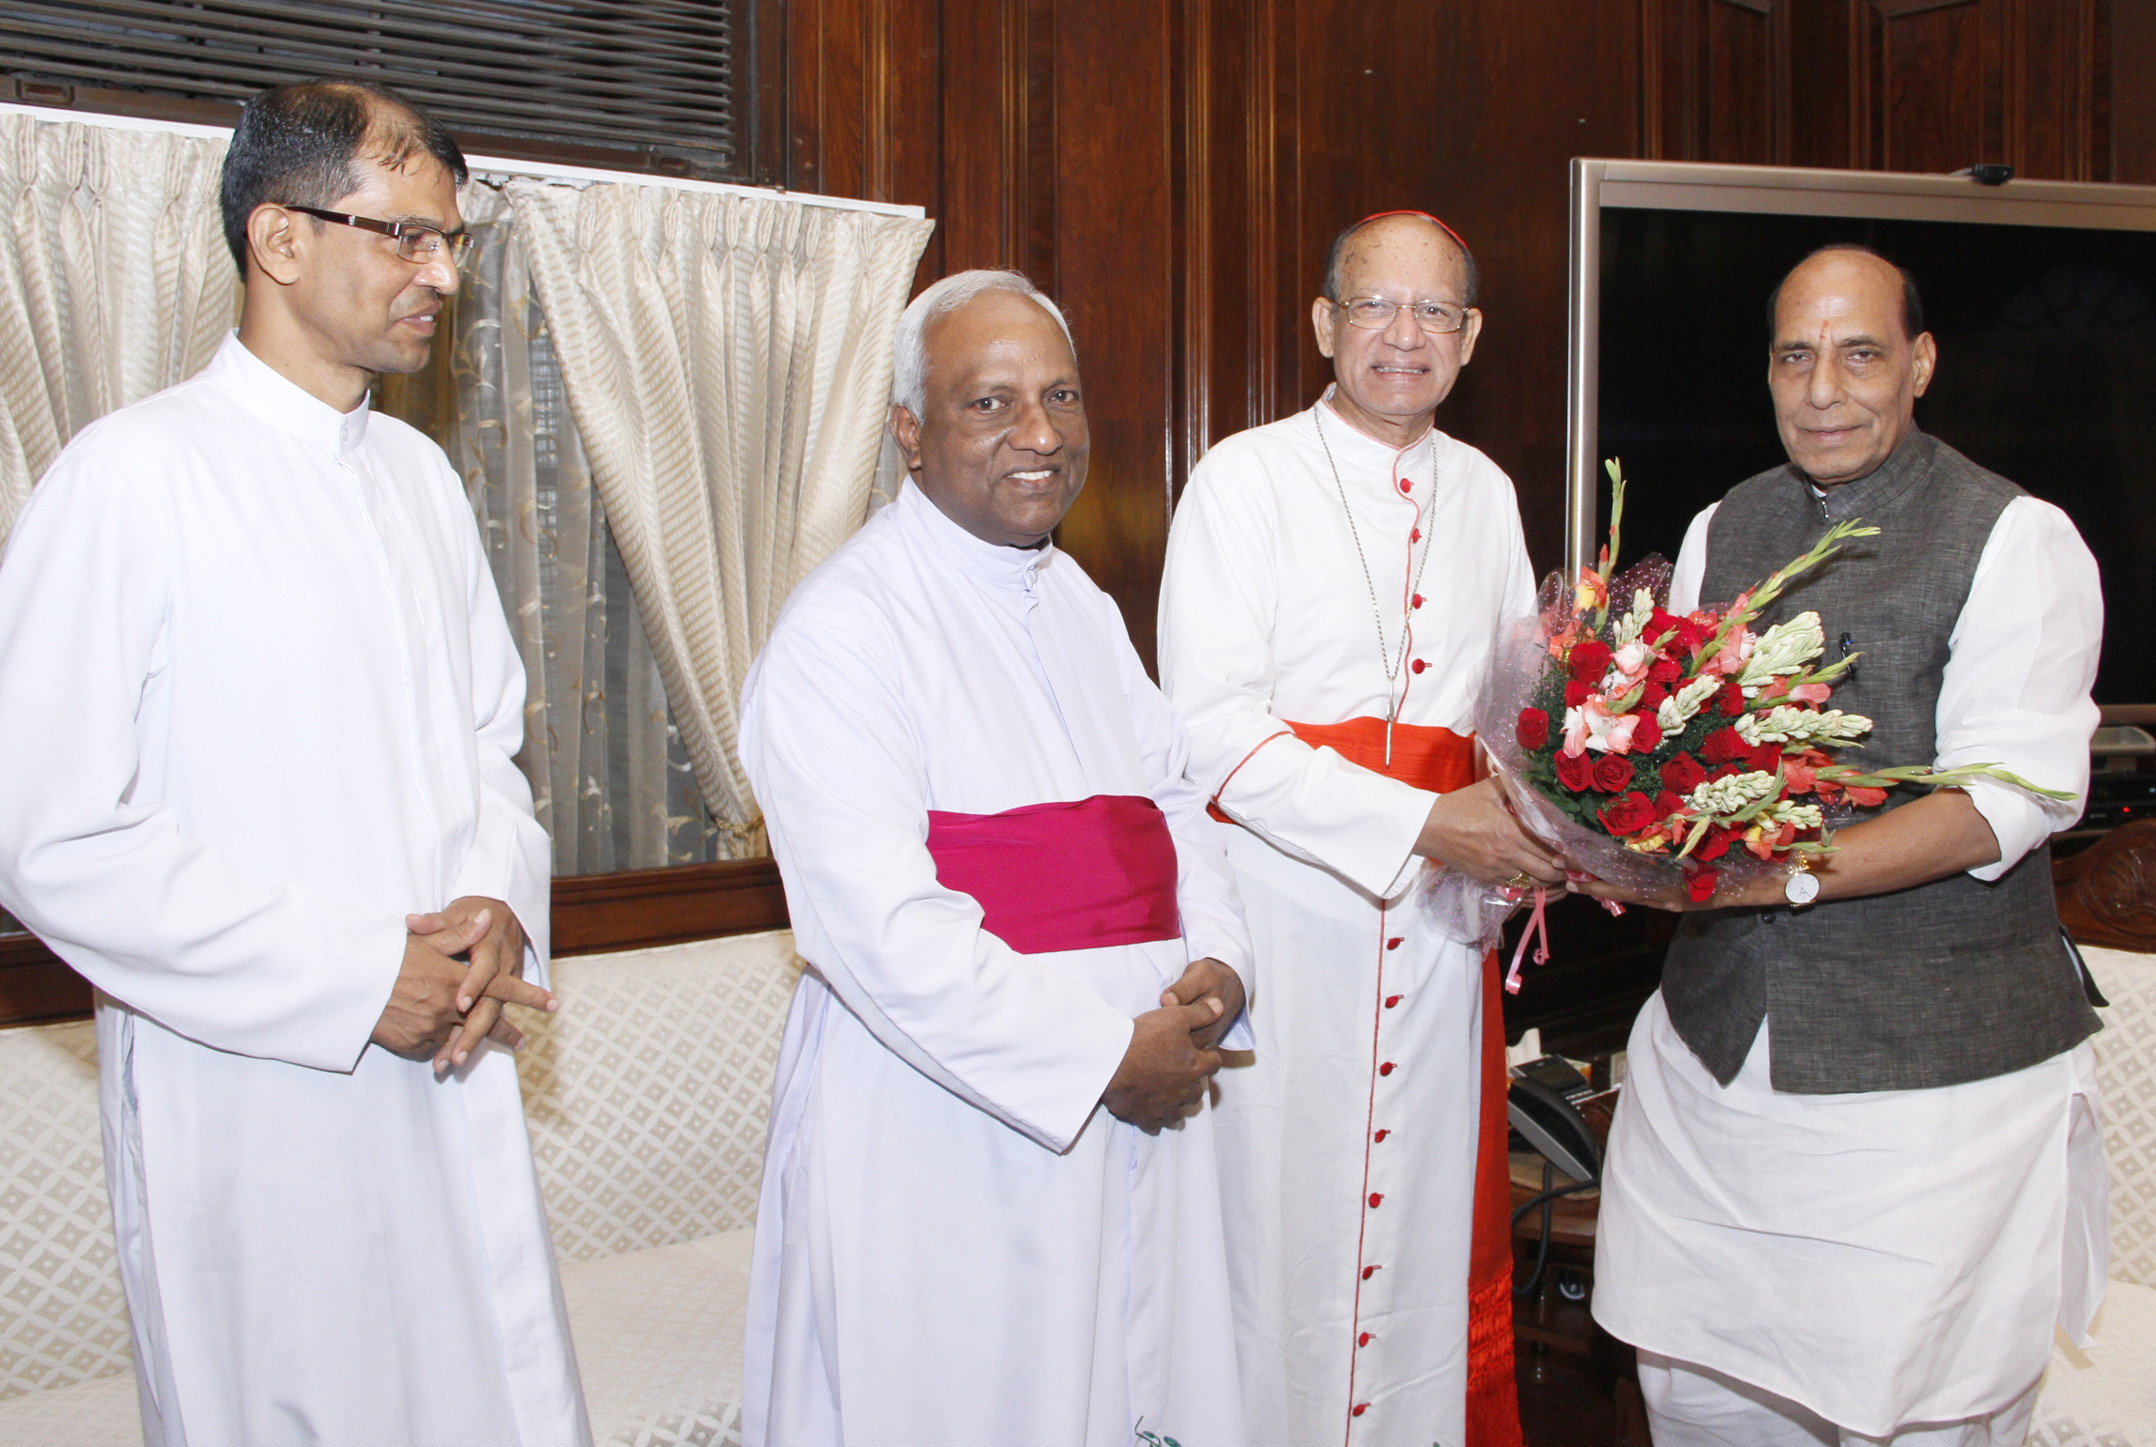 A delegation of Christian religious leaders led by the Archbishop of Bombay and President of Asian Bishops Conference, Cardinal Oswald Gracias calling on the Union Home Minister, Shri Rajnath Singh, in New Delhi on September 07, 2015.